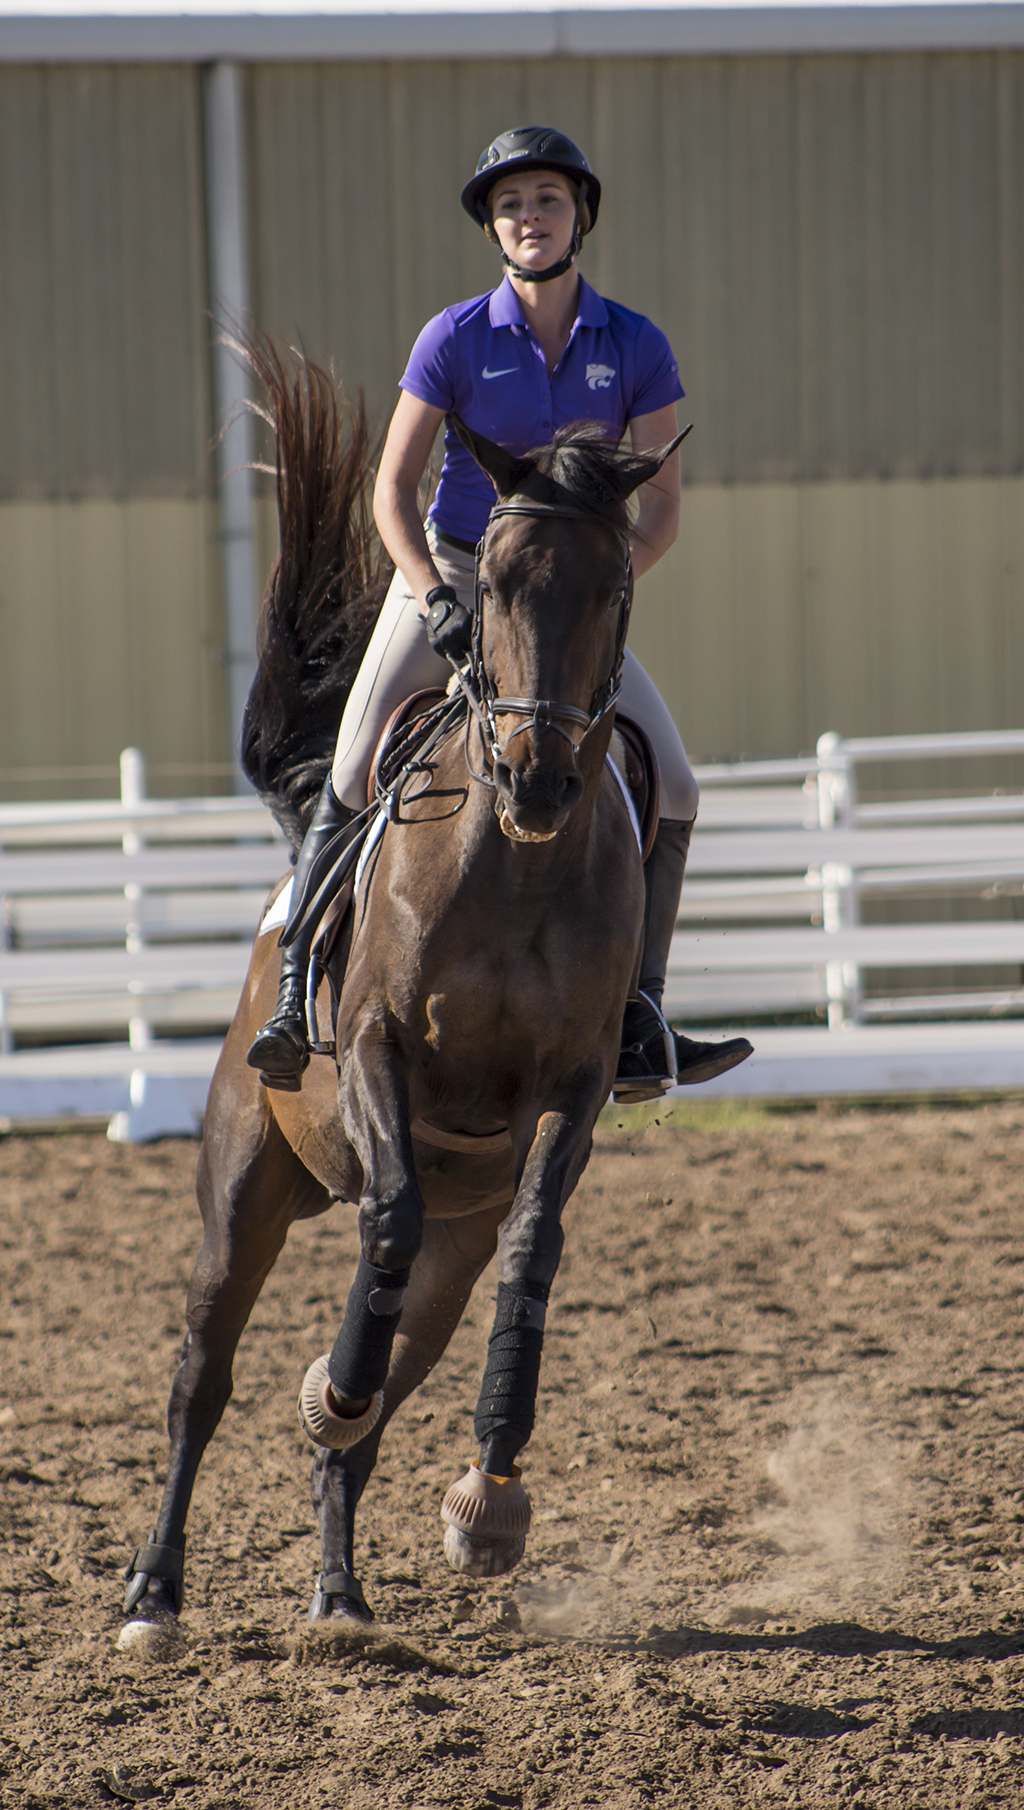 Final Equestrian Meet Results In Loss The Collegian